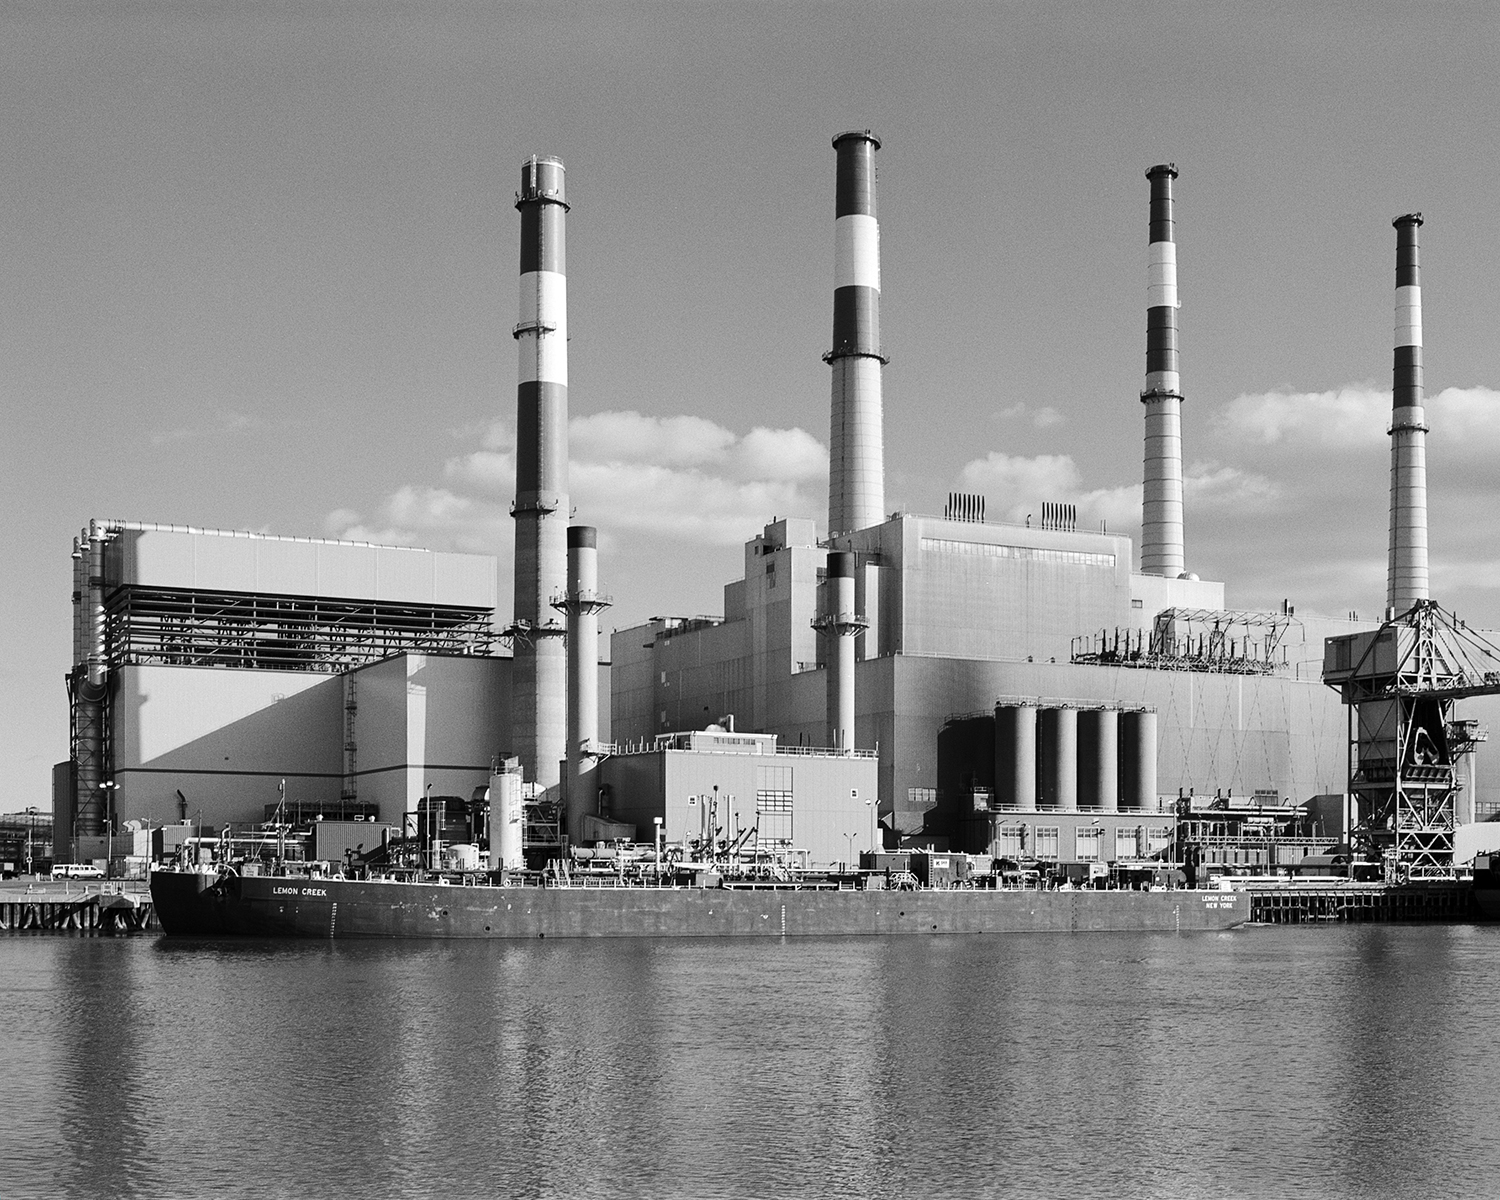 LIC_powerplant_R1_F007_WEB_1500.jpg